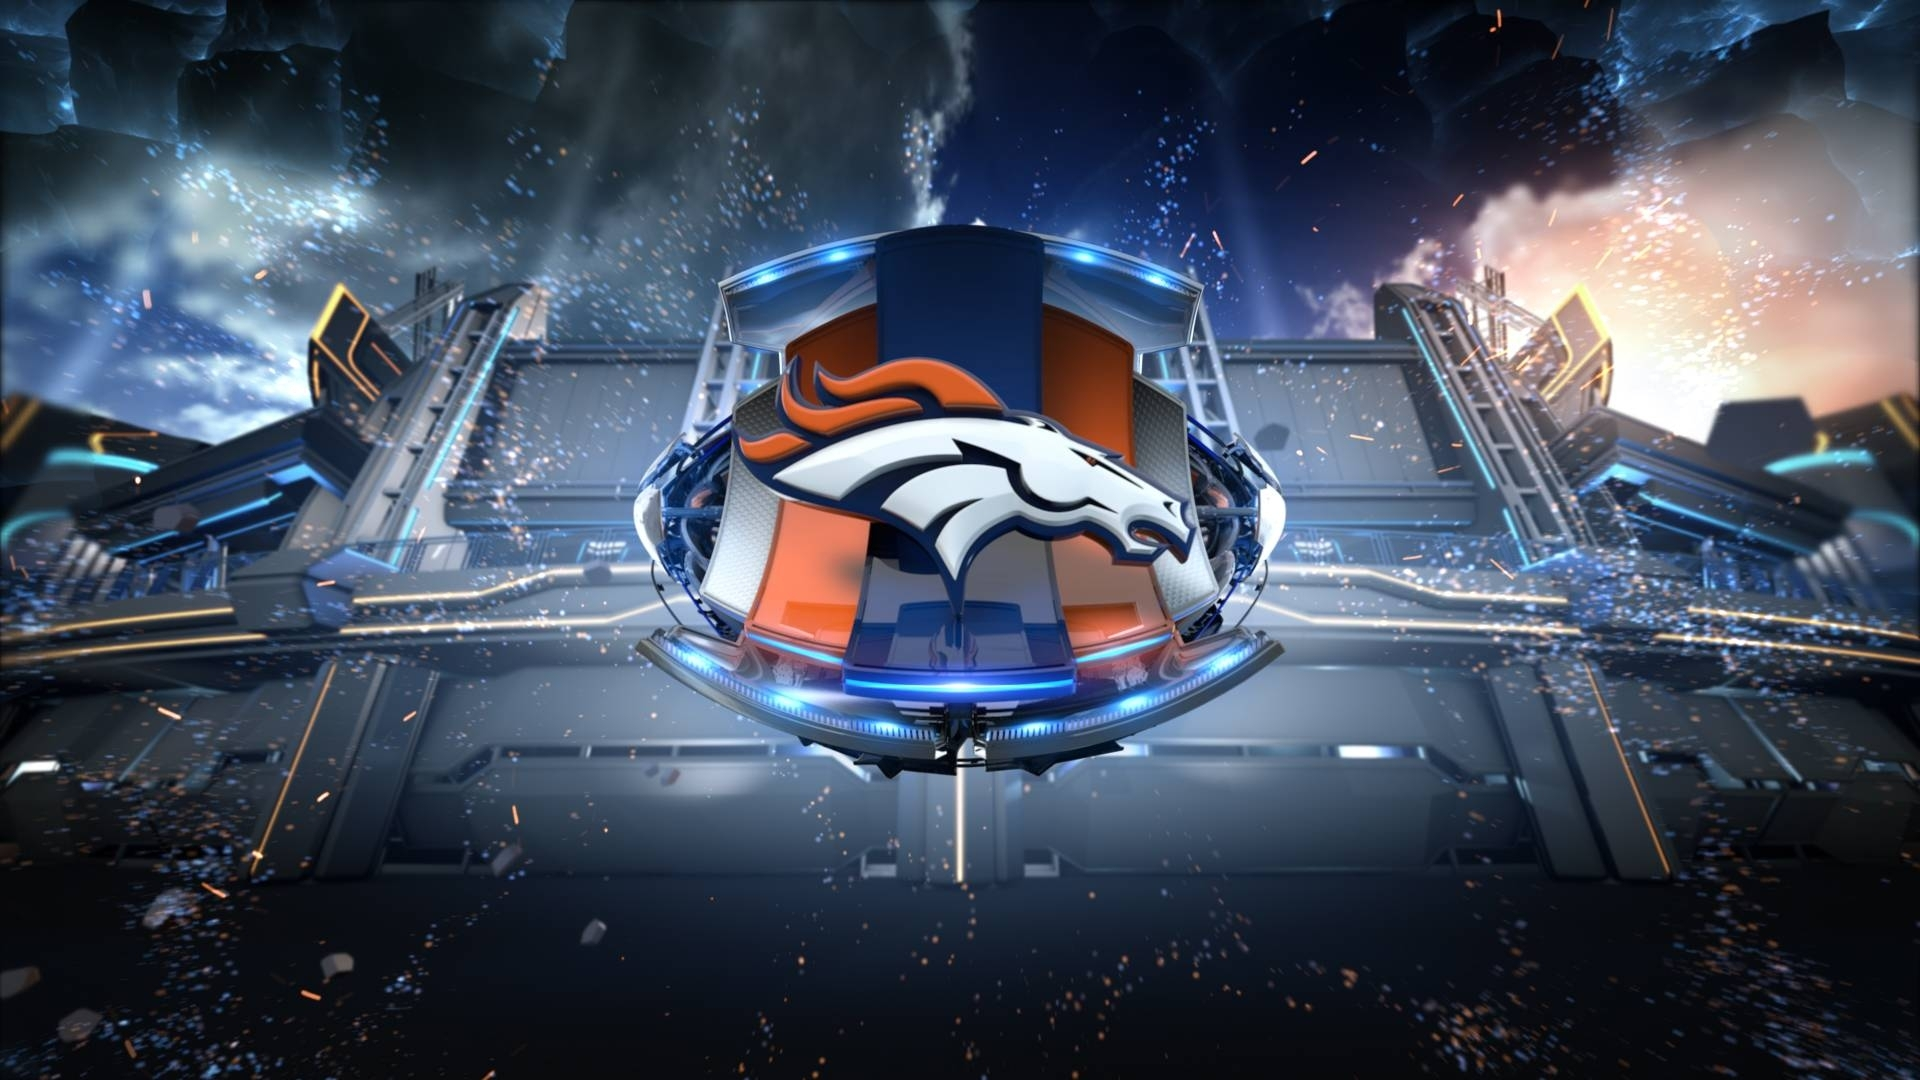 10 Top Denver Broncos Wallpaper Hd FULL HD 1080p For PC Desktop